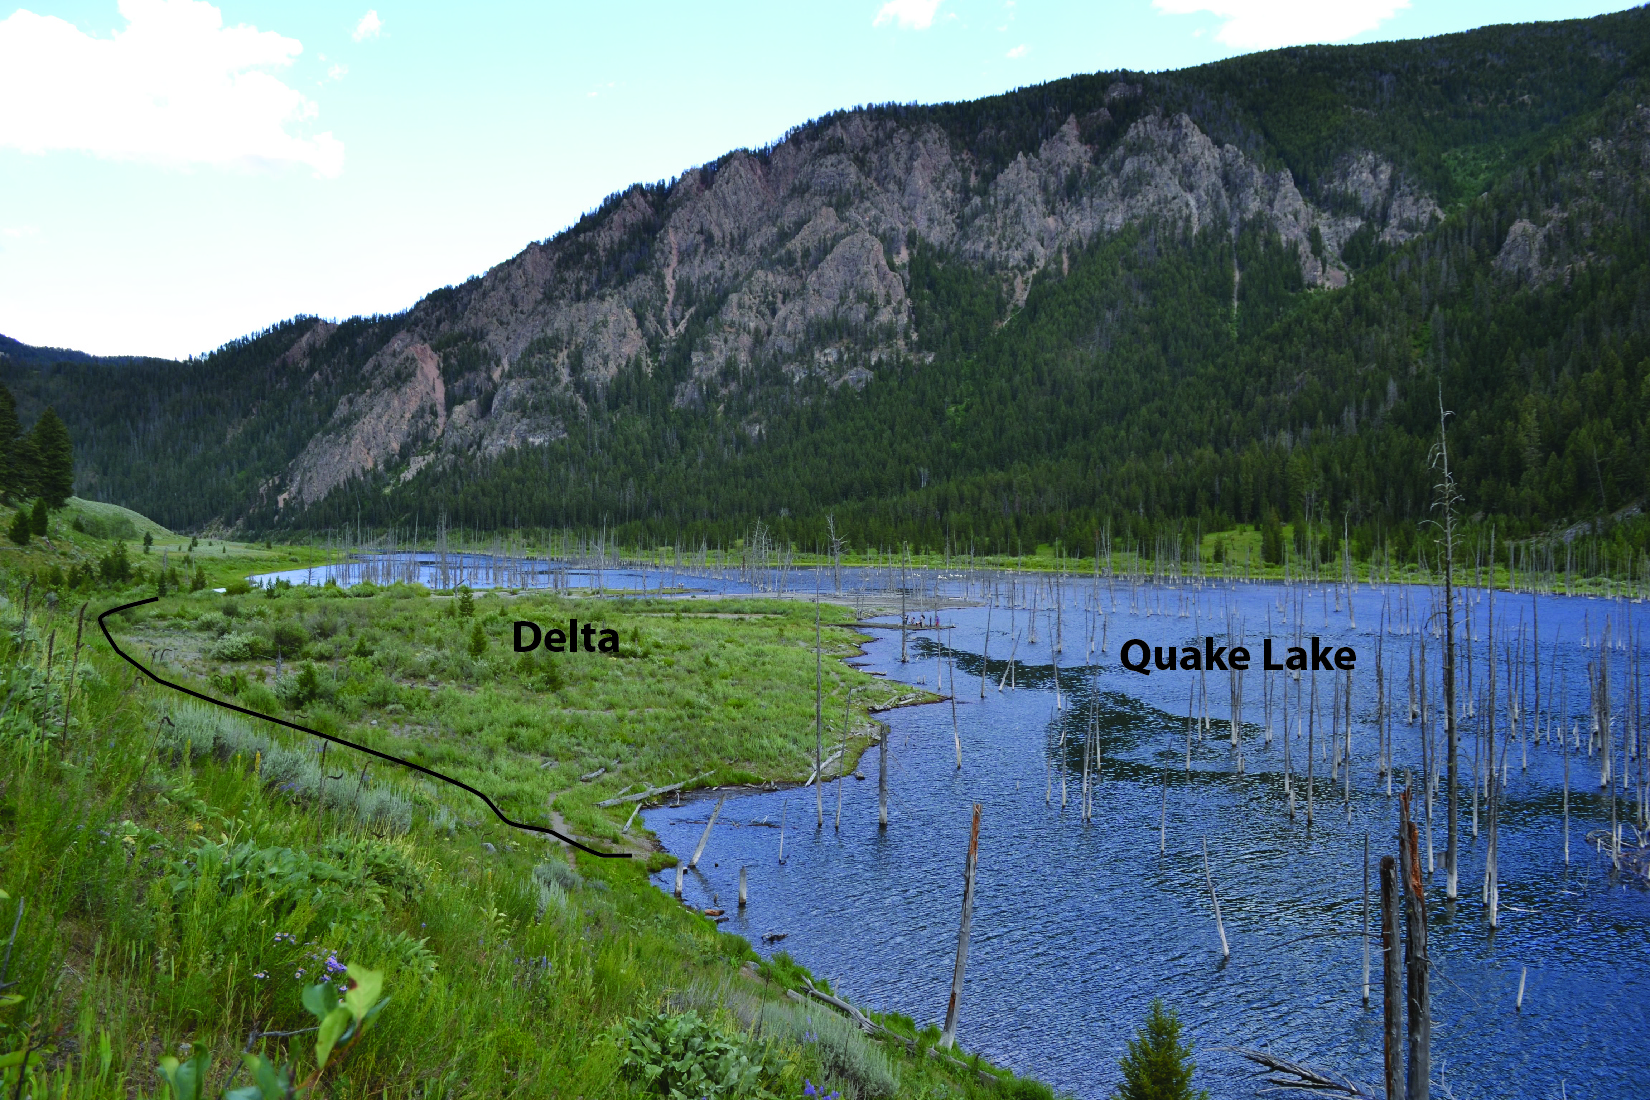 Delta in Quake Lake Montana. Deposition of this delta began in 1959, when the Madison river was dammed by the landslide caused by the 7.5 magnitude earthquake.